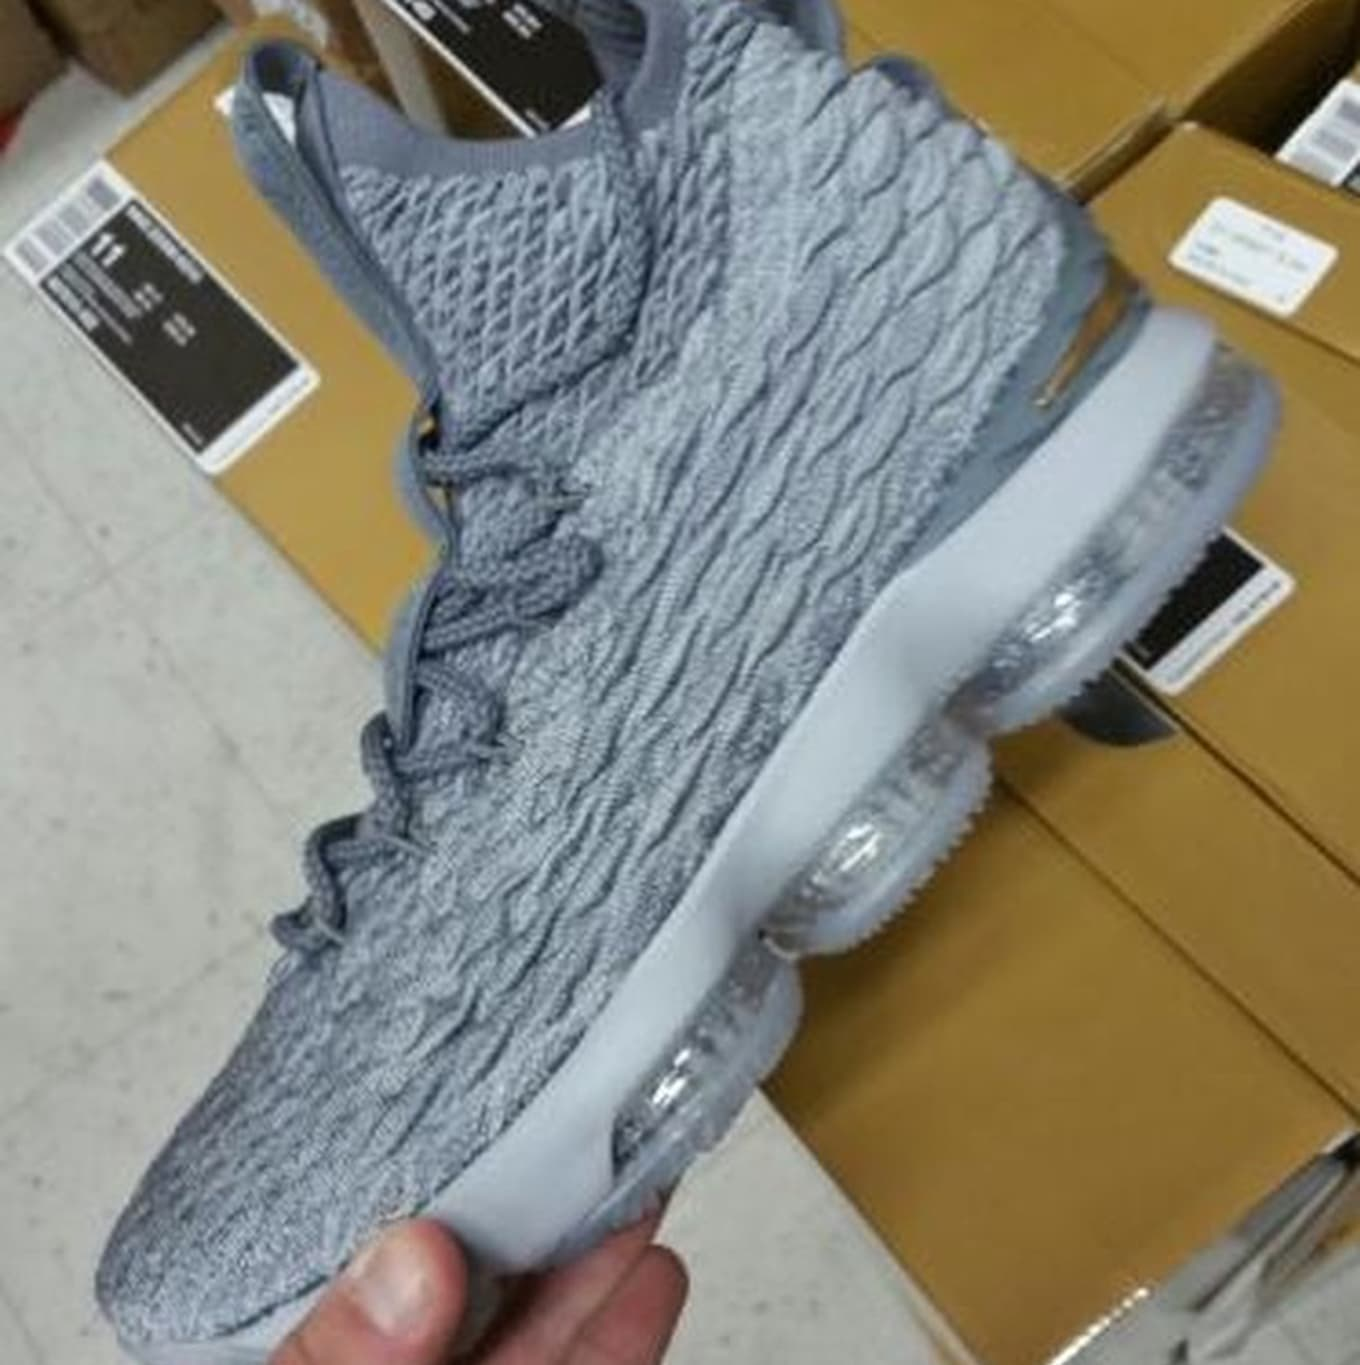 74385667c68 Nike LeBron 15 Grey Gold Release Date 897648-005